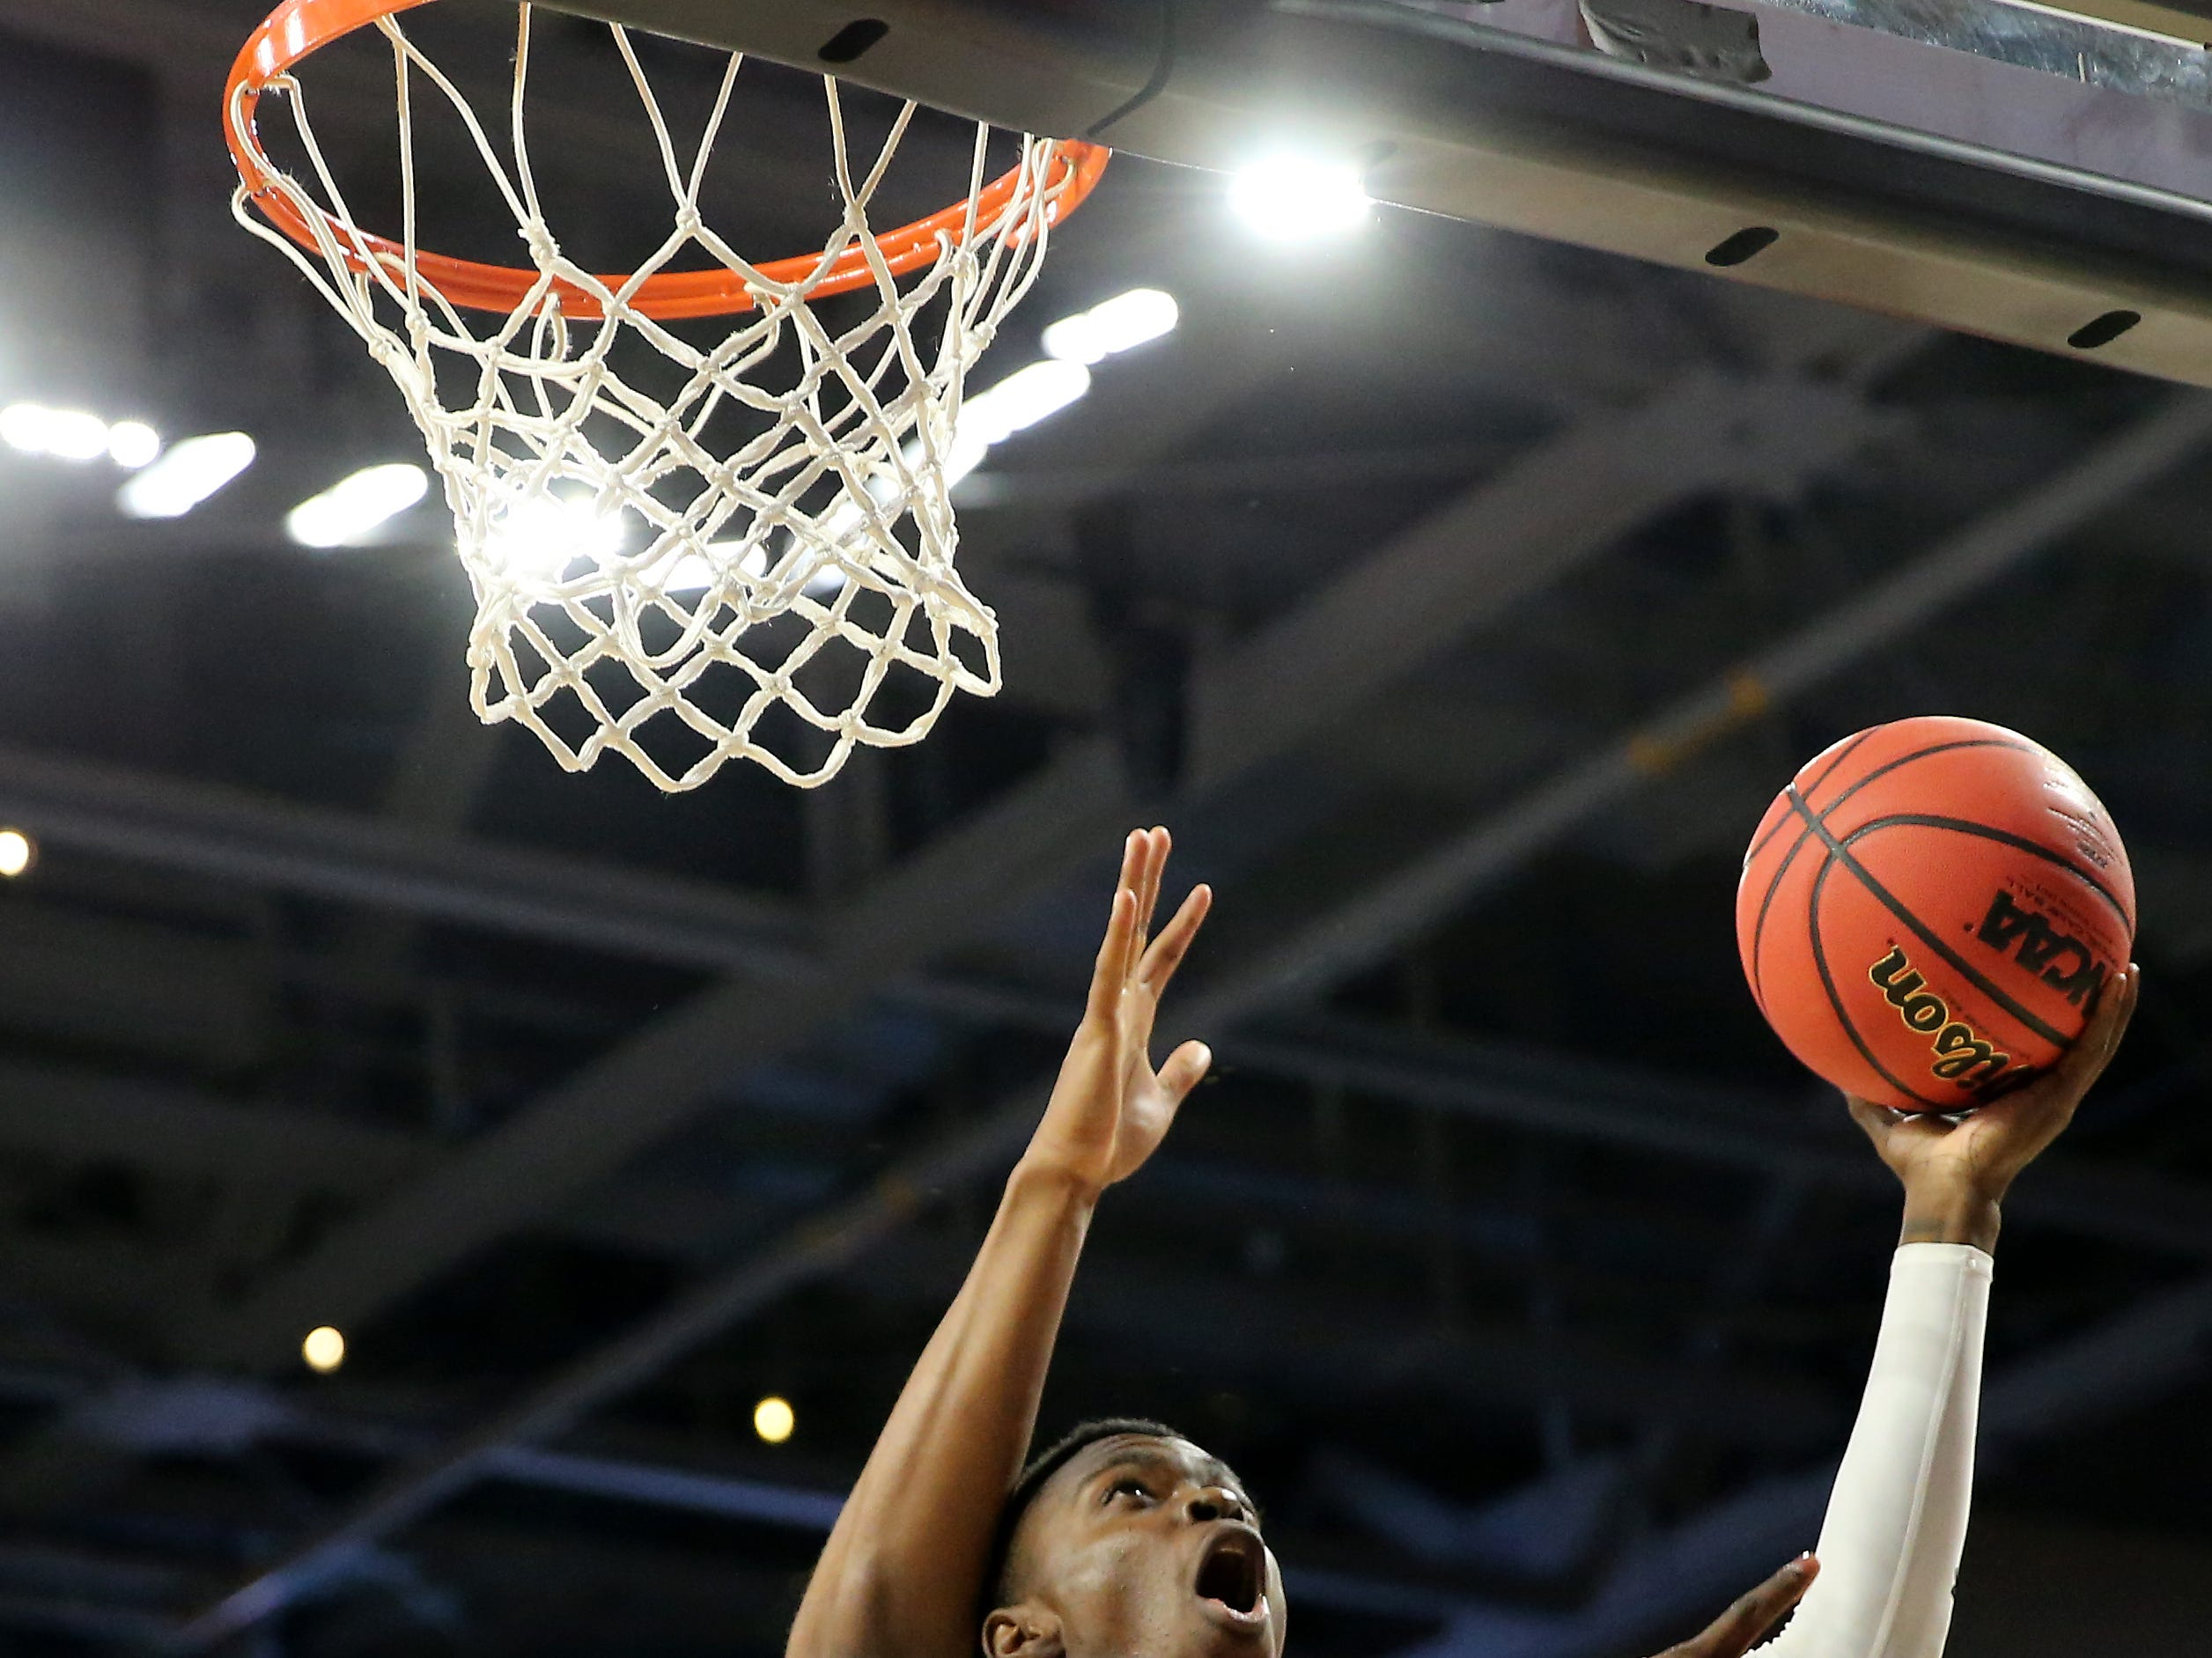 Cincinnati Bearcats forward Tre Scott (13) scores in the first half of an NCAA college basketball game against the South Florida Bulls, Tuesday, Jan. 15, 2019, at Fifth Third Arena in Cincinnati.